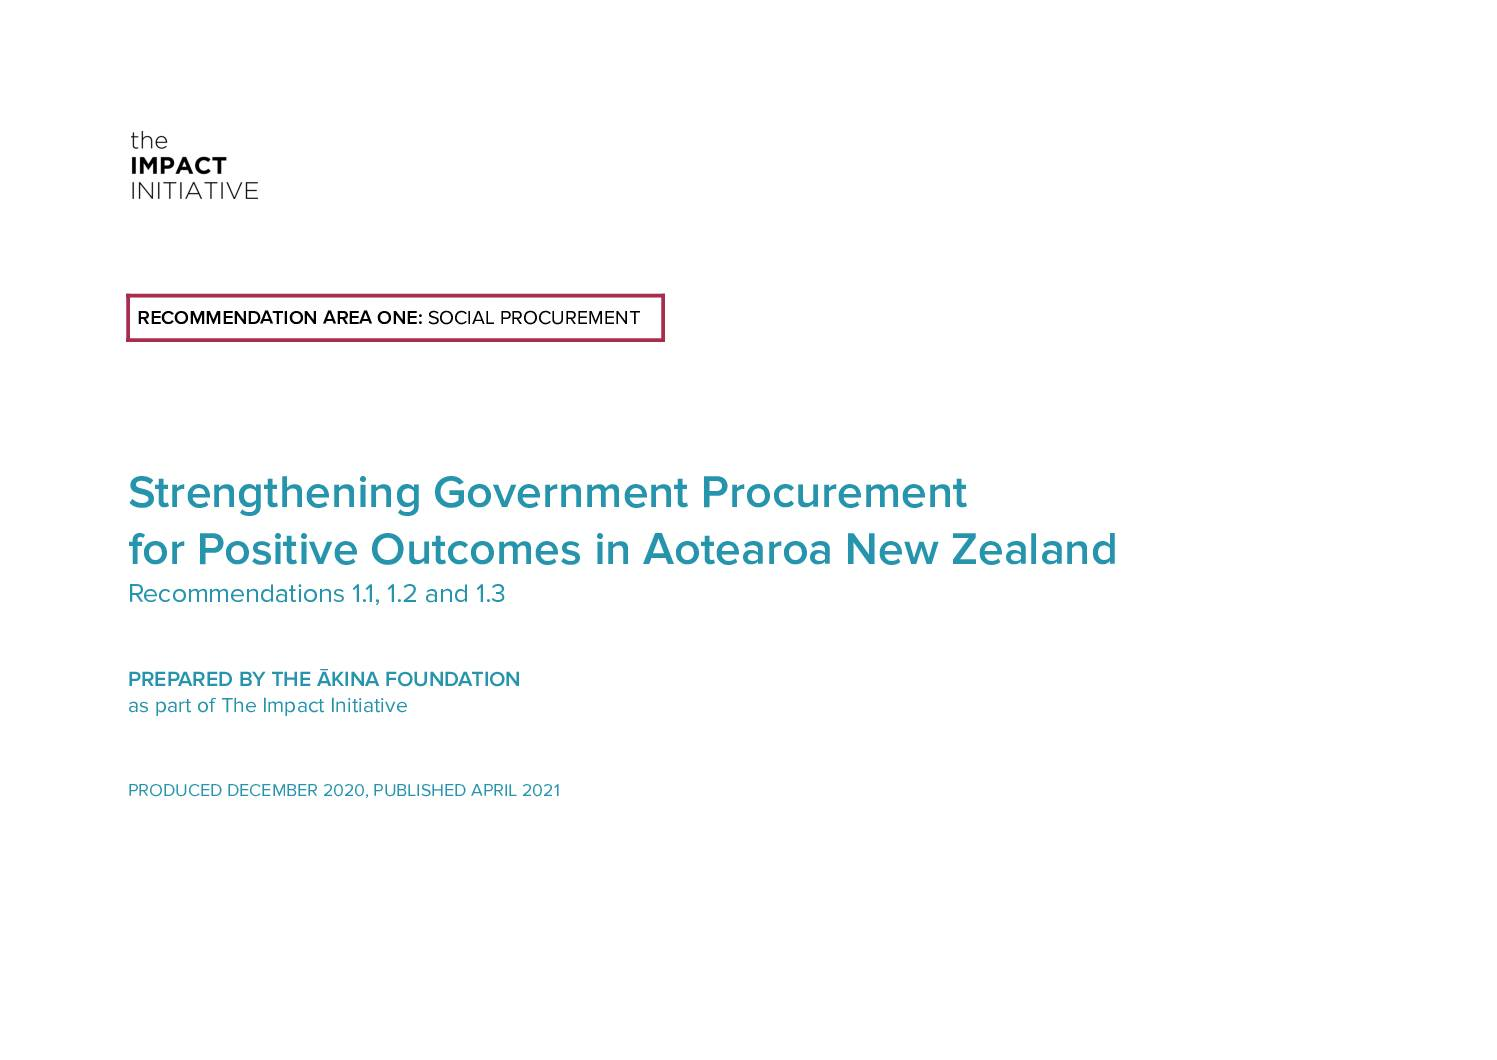 Strengthening Government Procurement: A White Paper